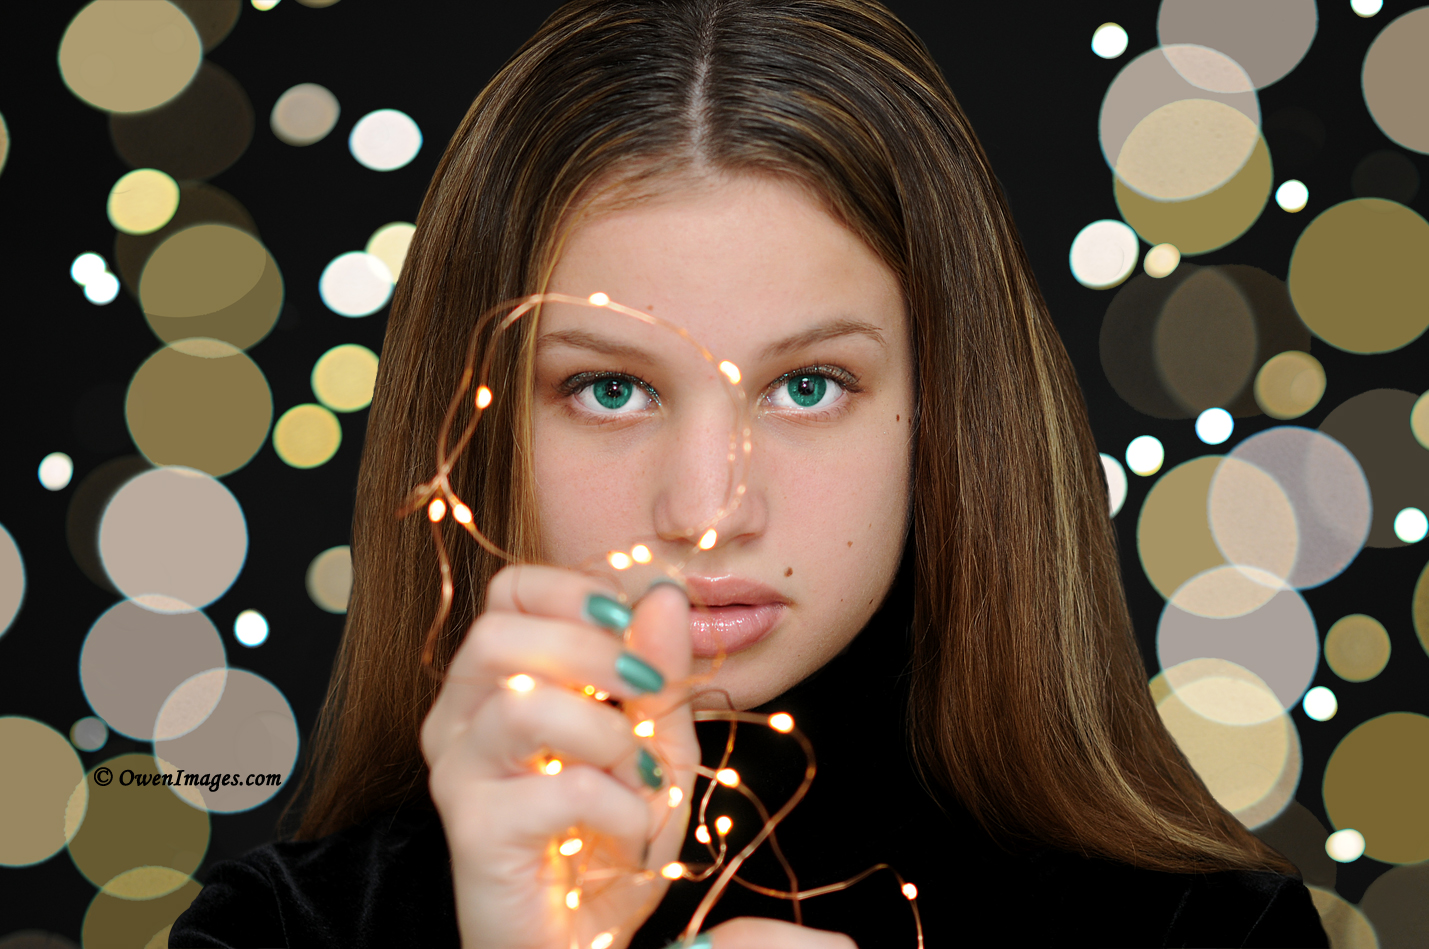 Portrait photography with tiny lights.